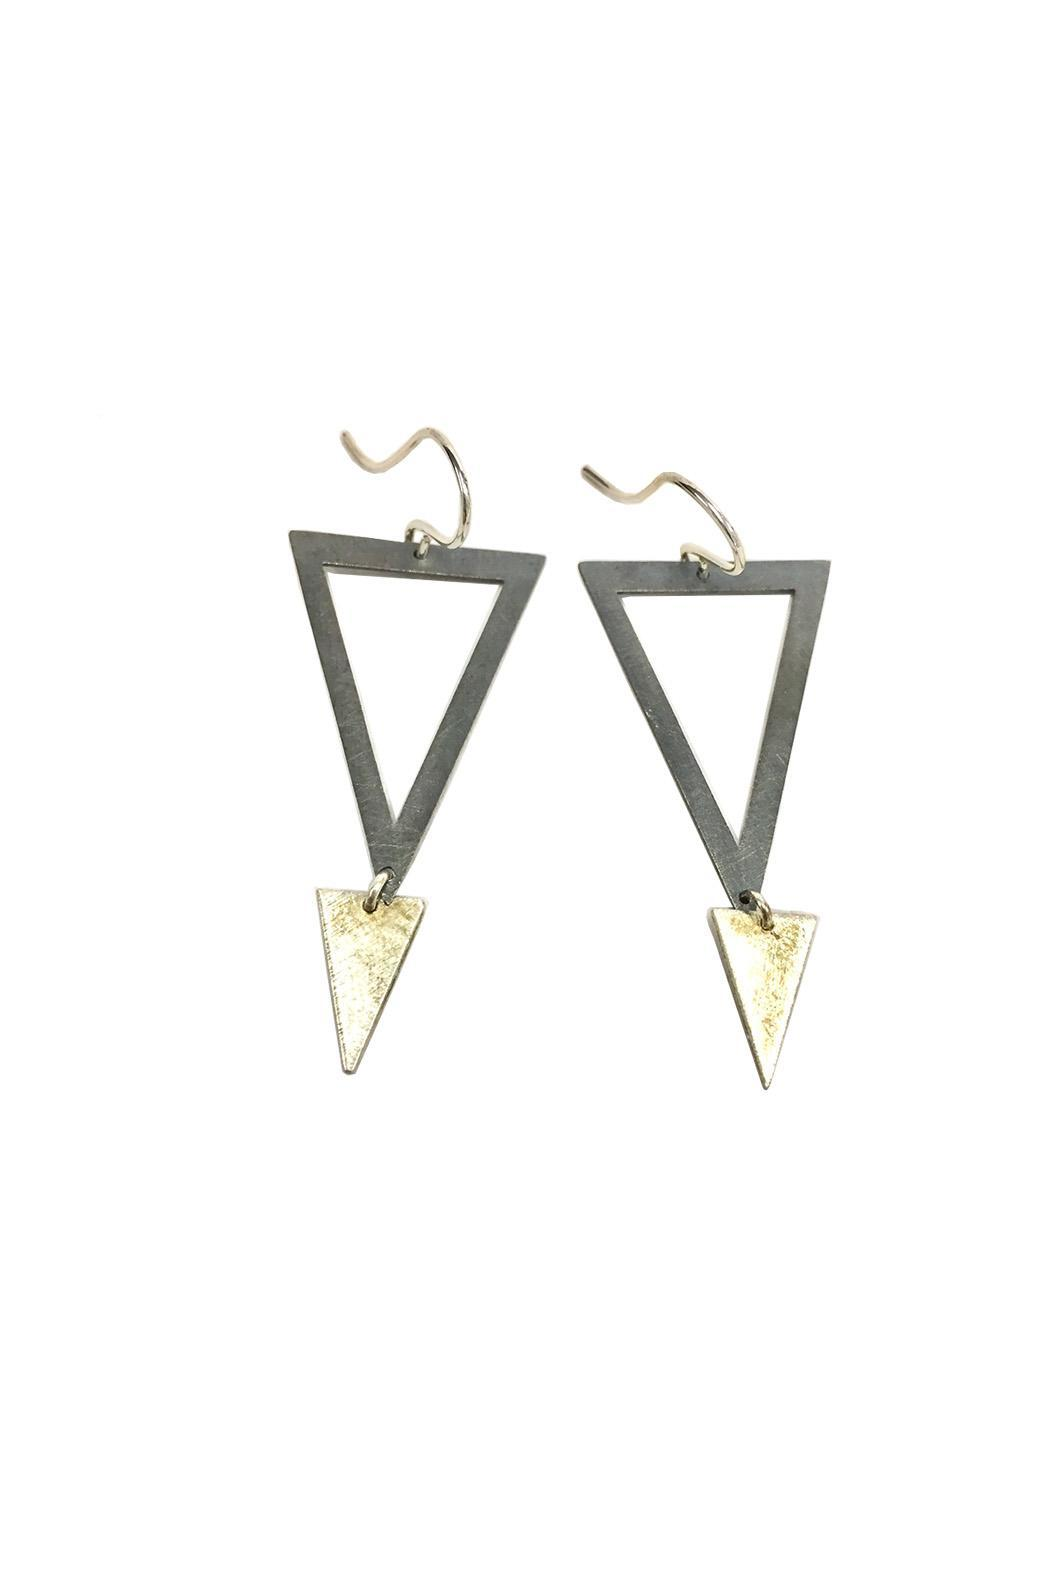 Zina Kao Silver Triangle Earrings - Front Cropped Image